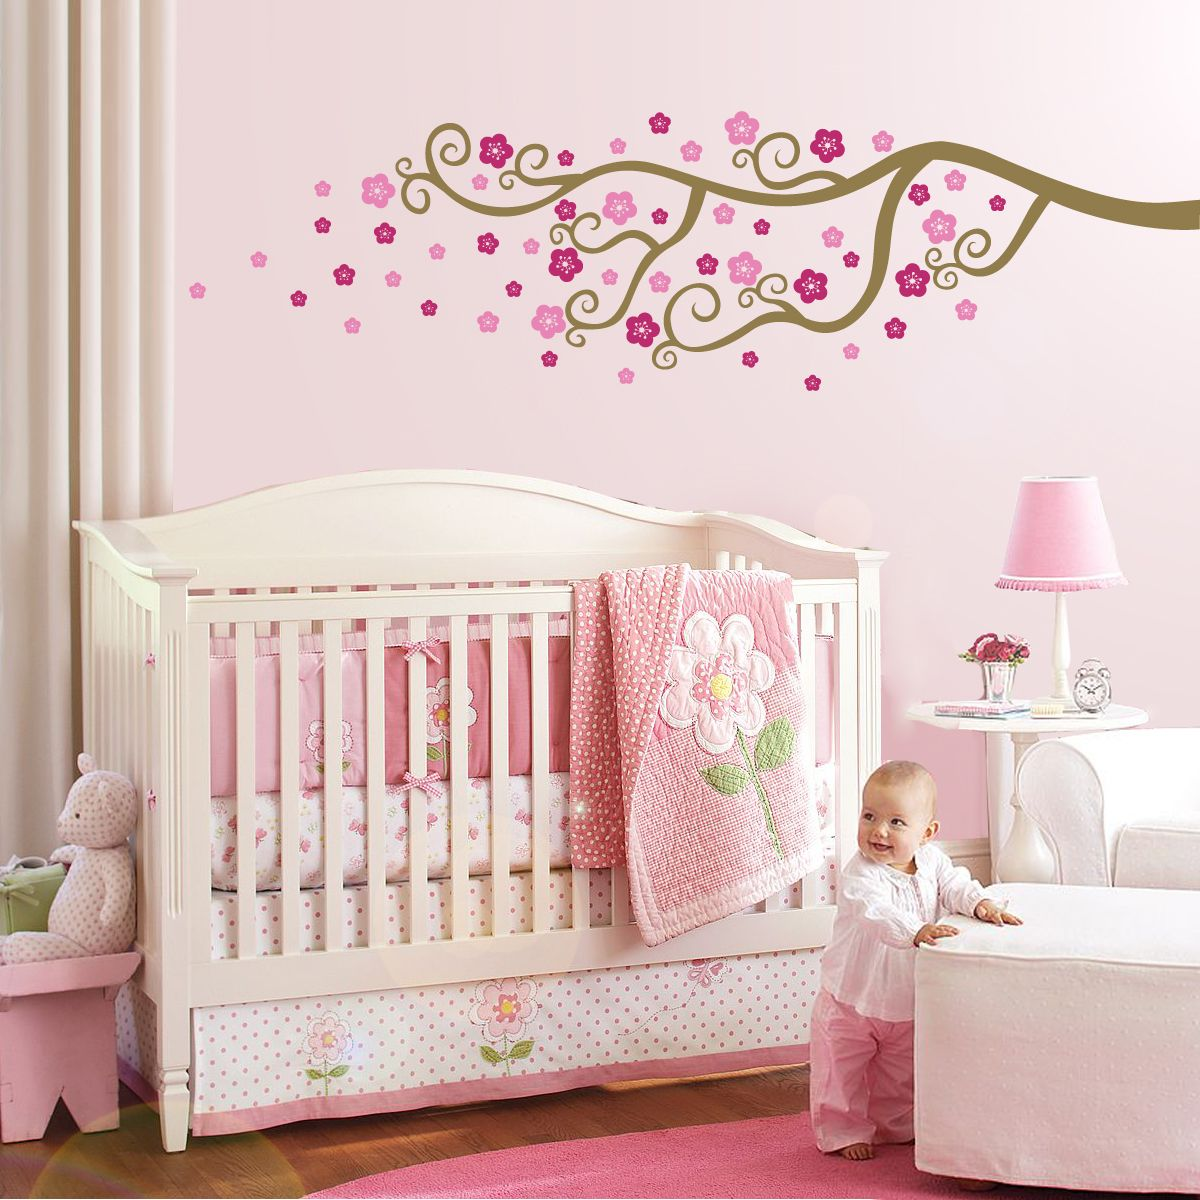 creative paint ideas for kids bedroom captivating pink tree wall decal baby room with pink and white wooden cradle combination kid stuff pinterest